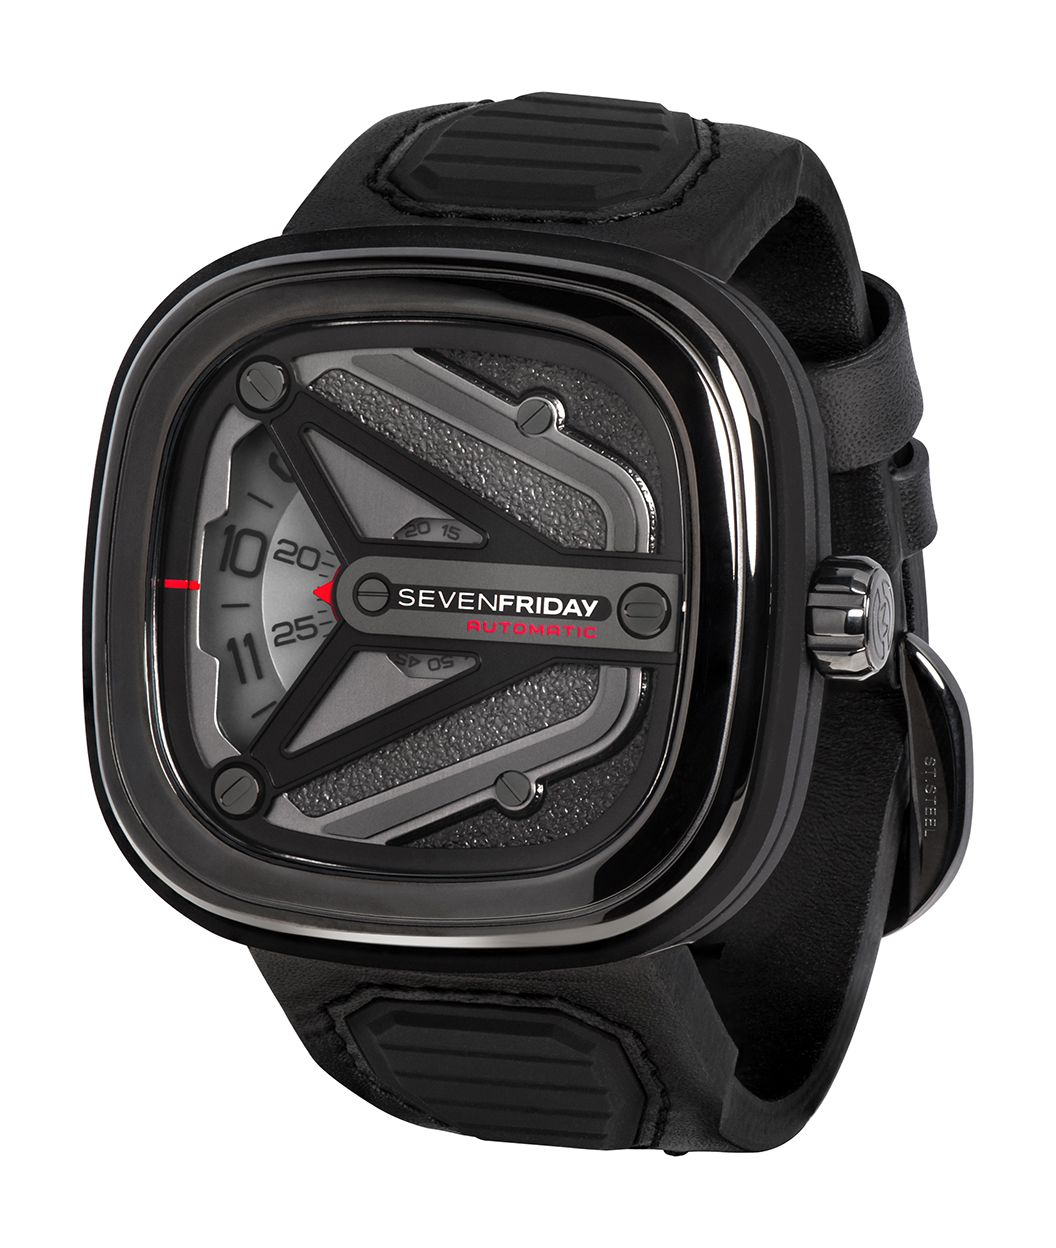 106ec978746 New Release  SEVENFRIDAY M3 01 Spaceship - Stainless Steel Case